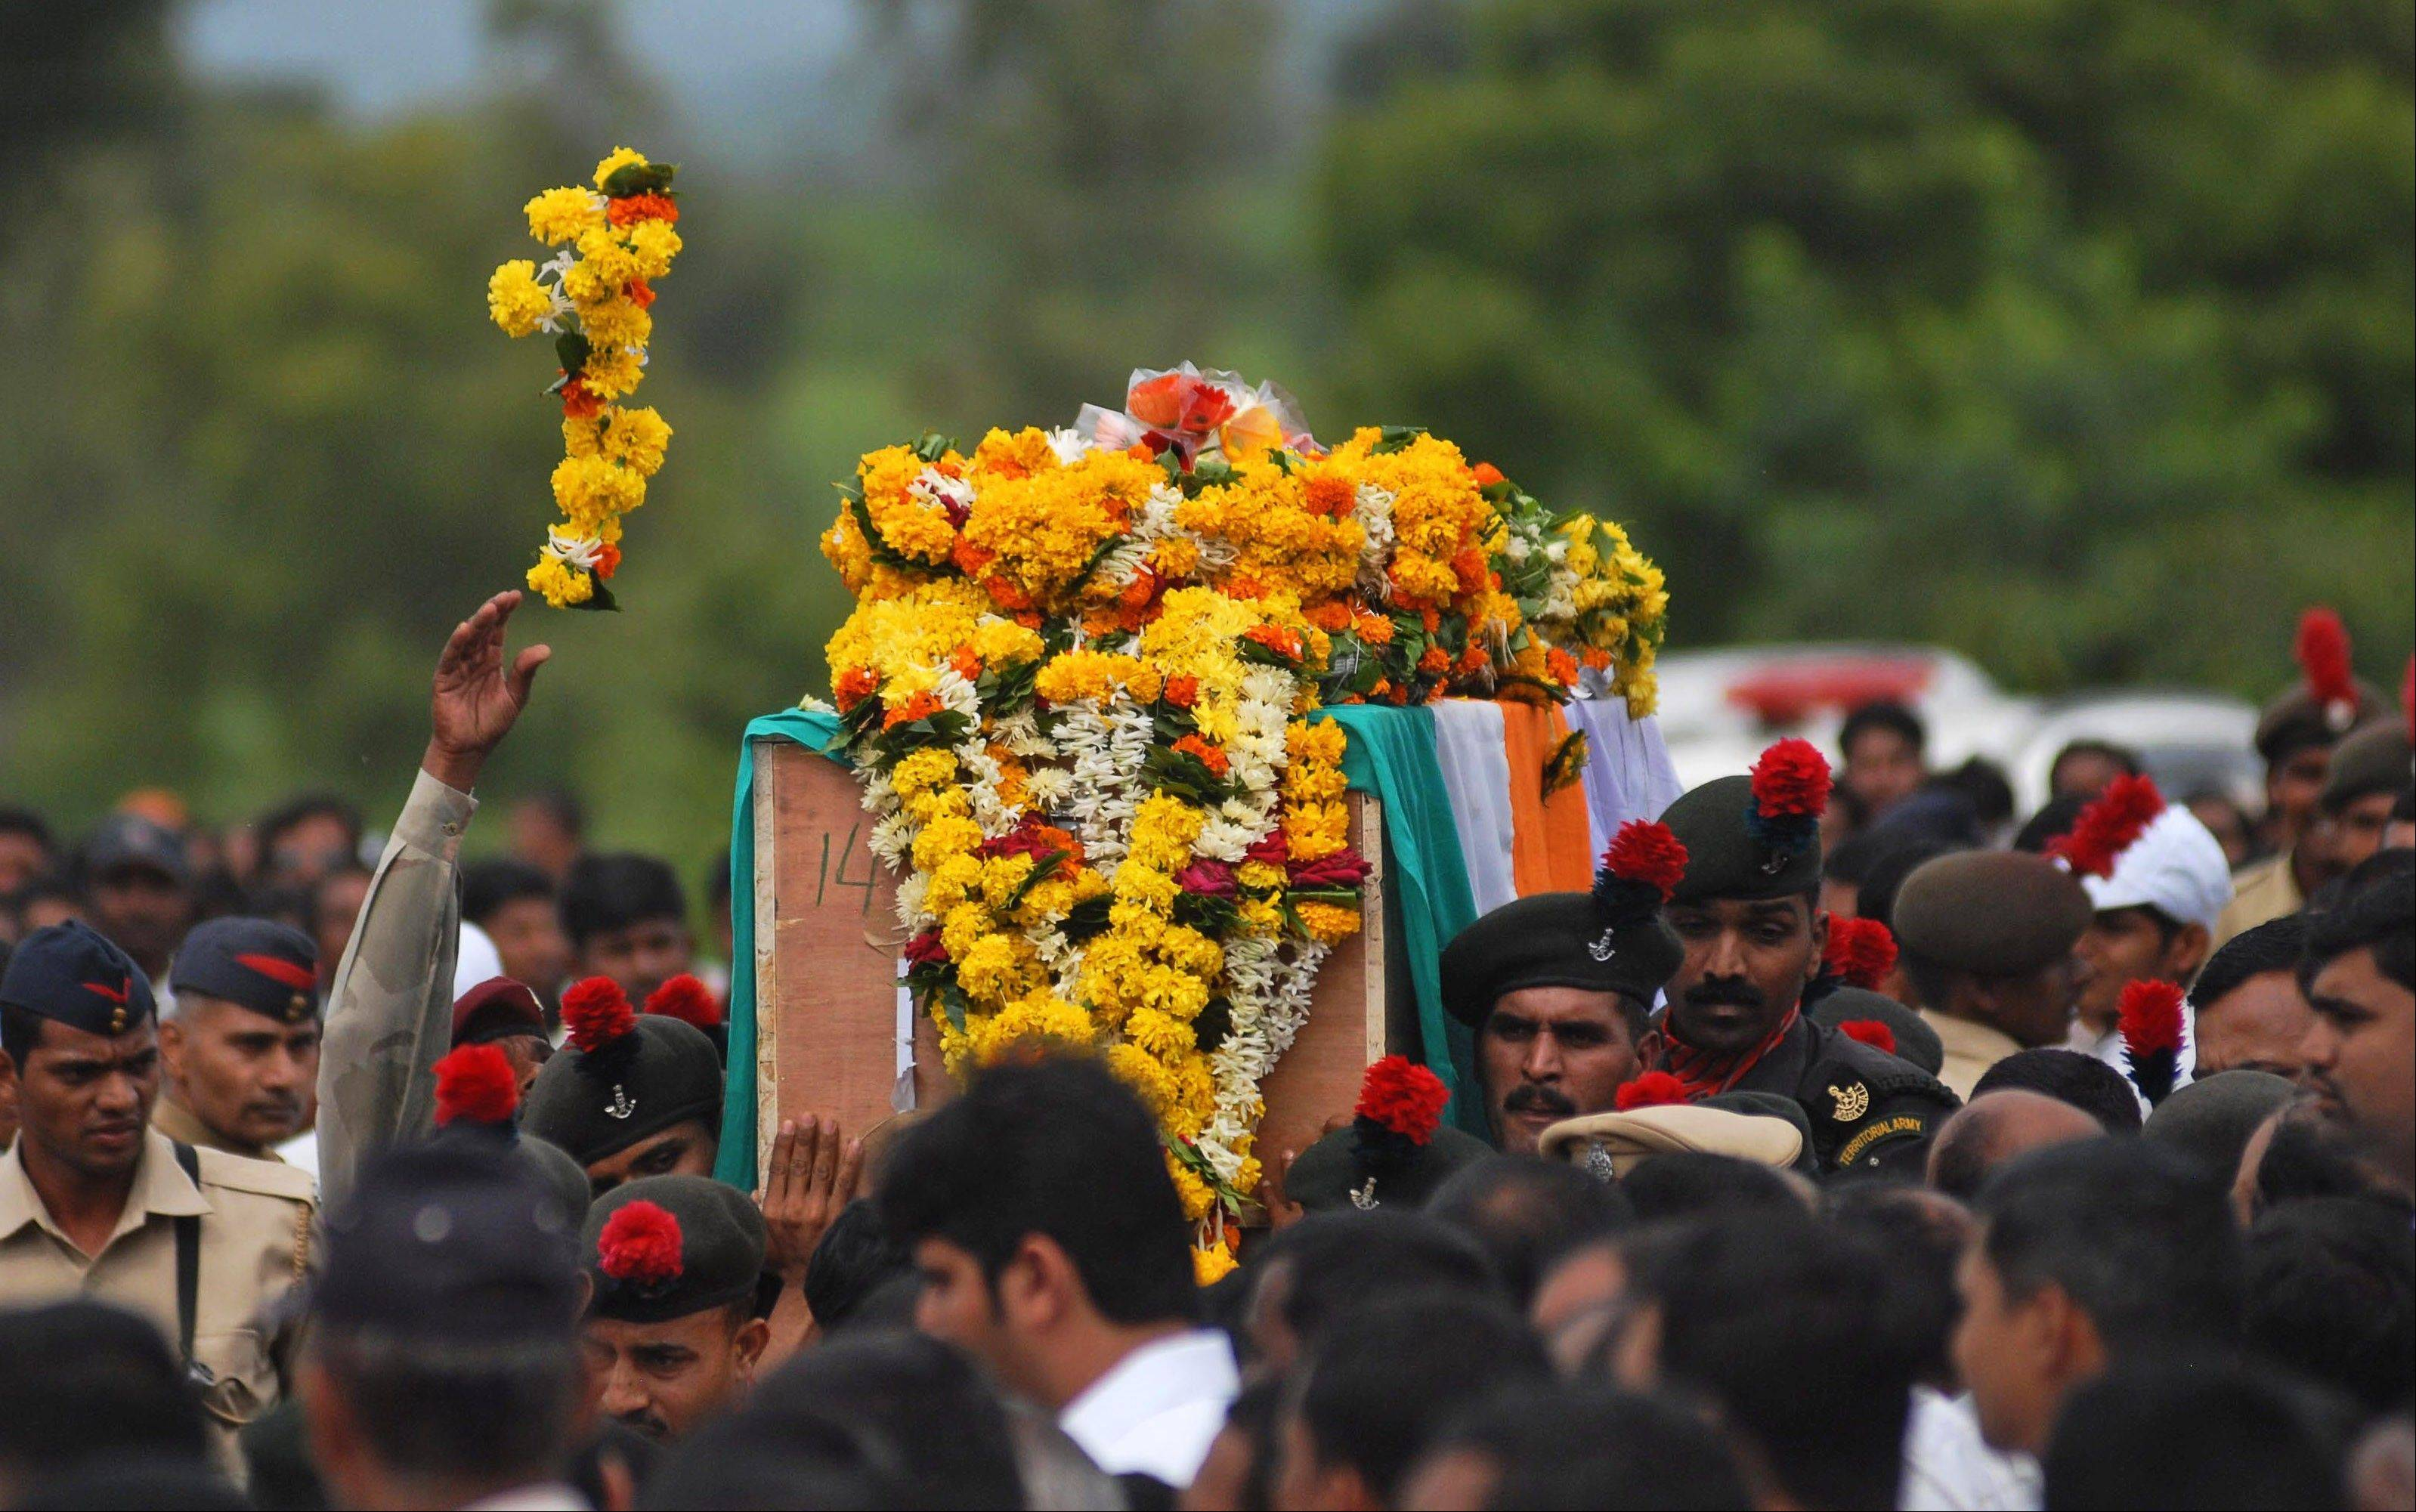 Indian army soldiers carry the coffin of their colleague Naik Kundalik Mane, allegedly killed by Pakistani soldiers Tuesday, during his funeral procession at Pimpalgaon village, in the western Indian state of Maharashtra, Thursday, Aug. 8, 2013. India has directly accused Pakistani army troops of killing five Indian soldiers in the disputed Himalayan region of Kashmir and implied this could hit peace efforts by the two countries. Pakistan accused Indian troops of shelling its territory along the disputed Kashmir border on Monday and killing a civilian, the latest in a series of allegations of cross-border attacks made by both sides over the past week.